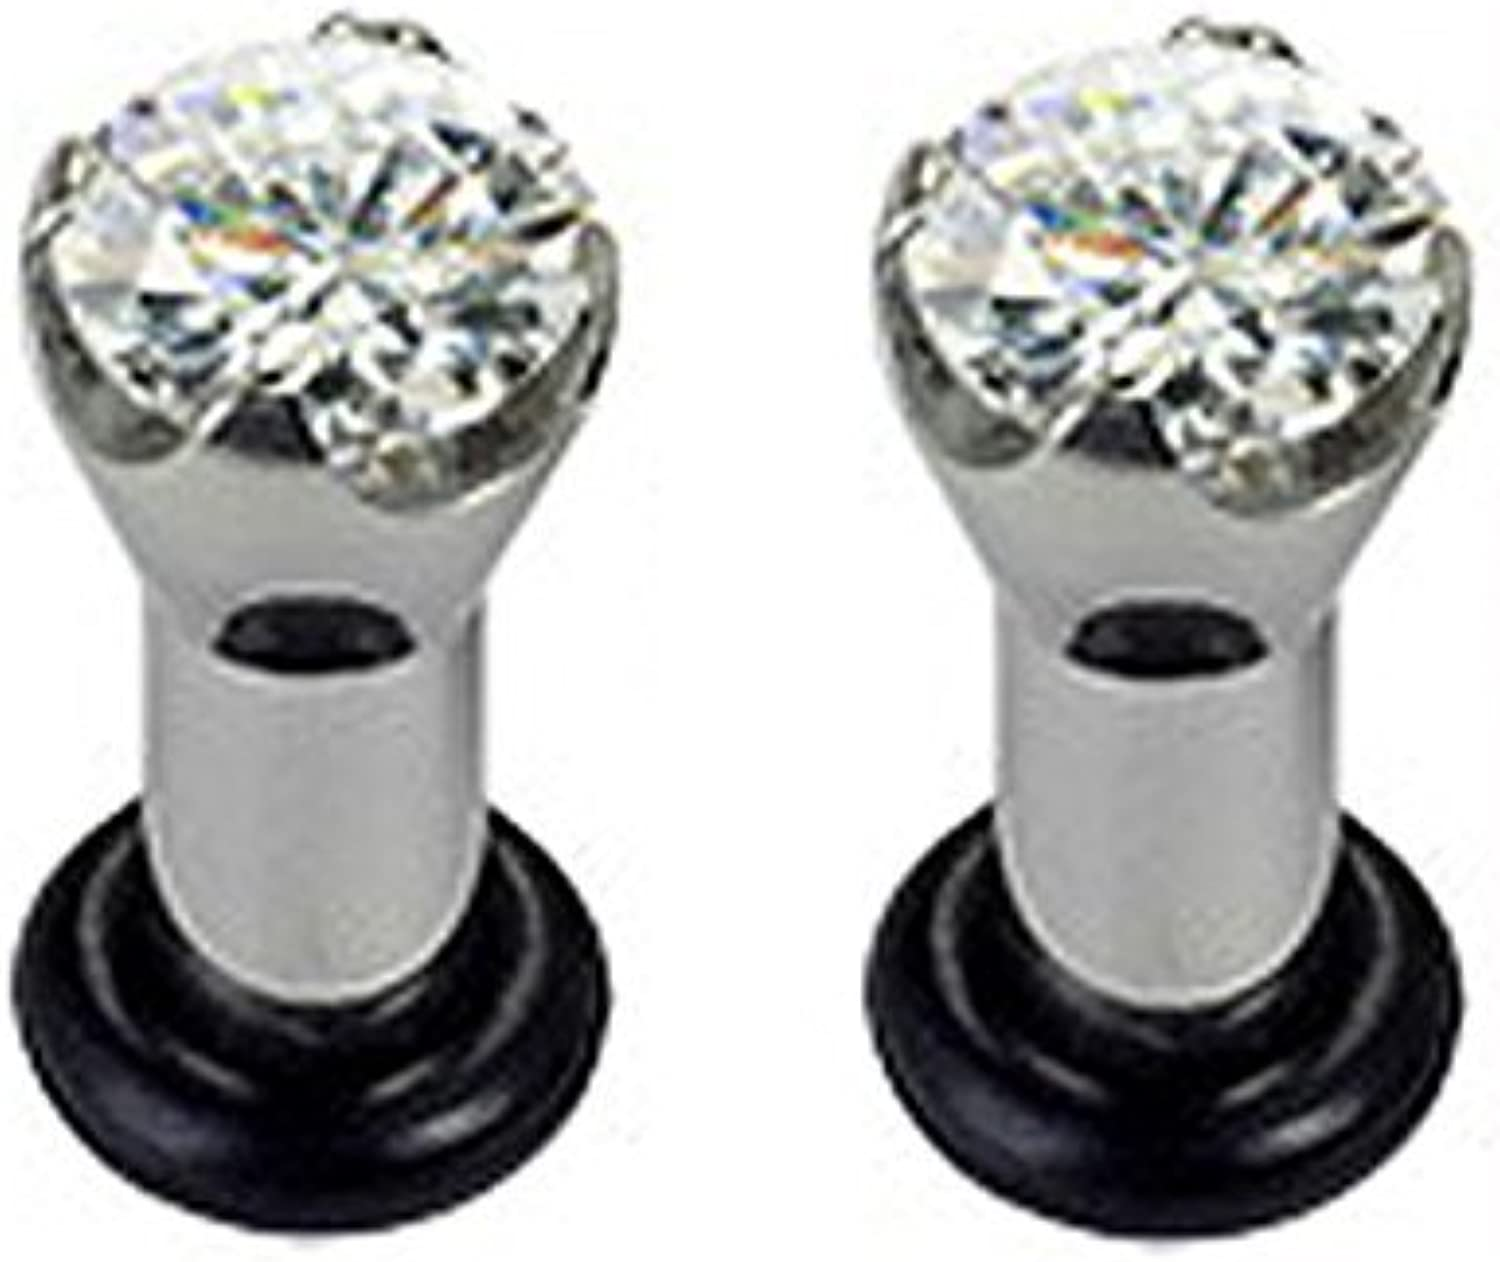 (4g) Stainless Steel 5mm Tunnel Flesh Plug With Cut Diamond Stone by HB101